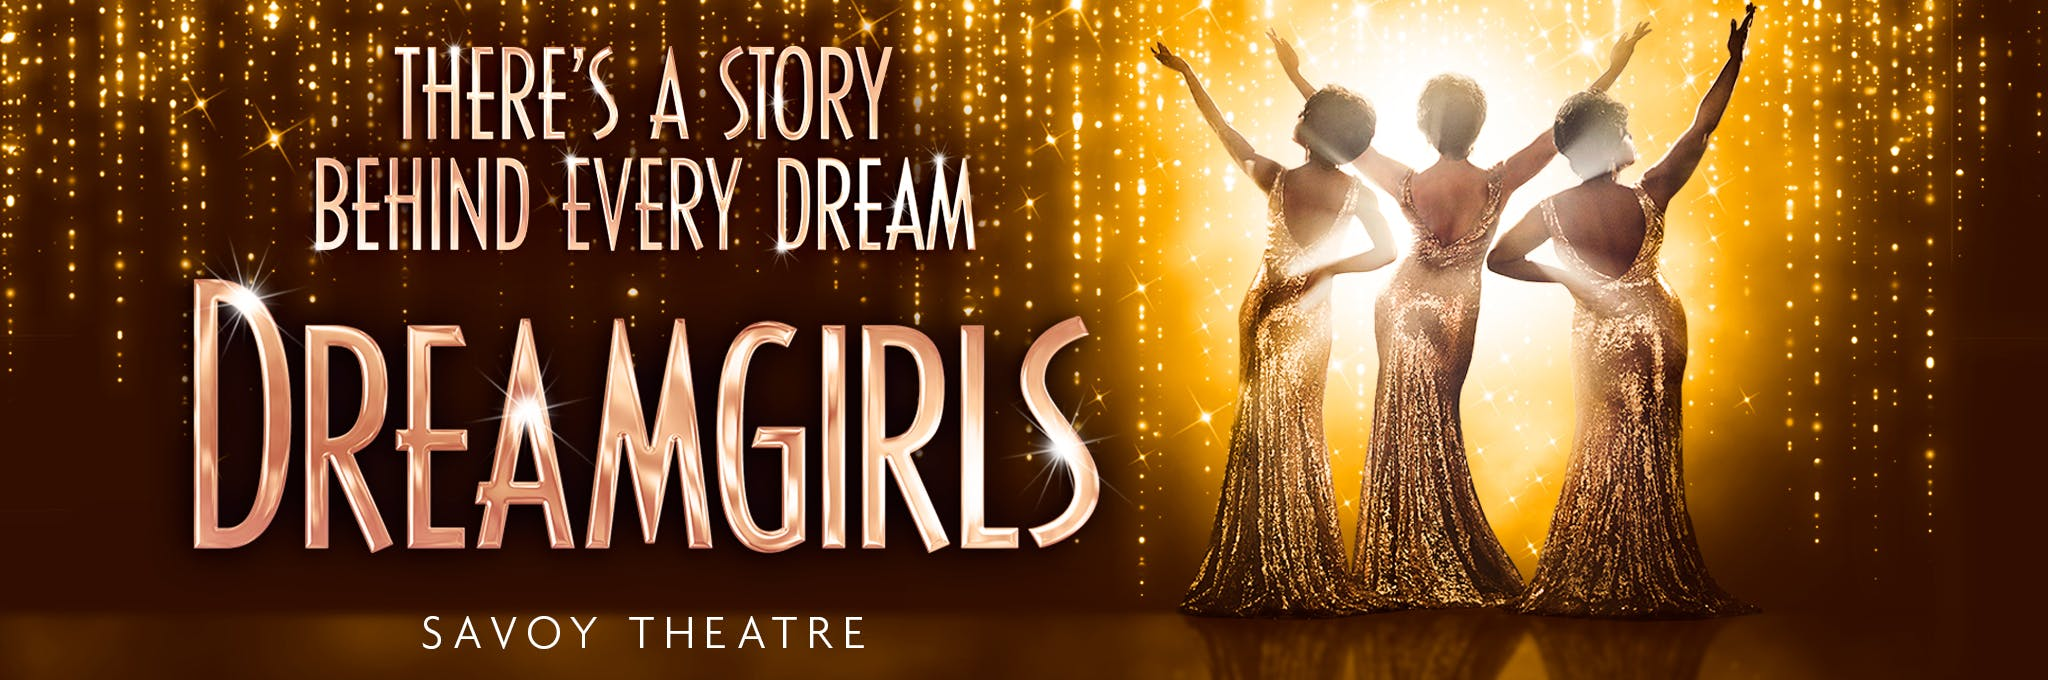 Dreamgirls Logo